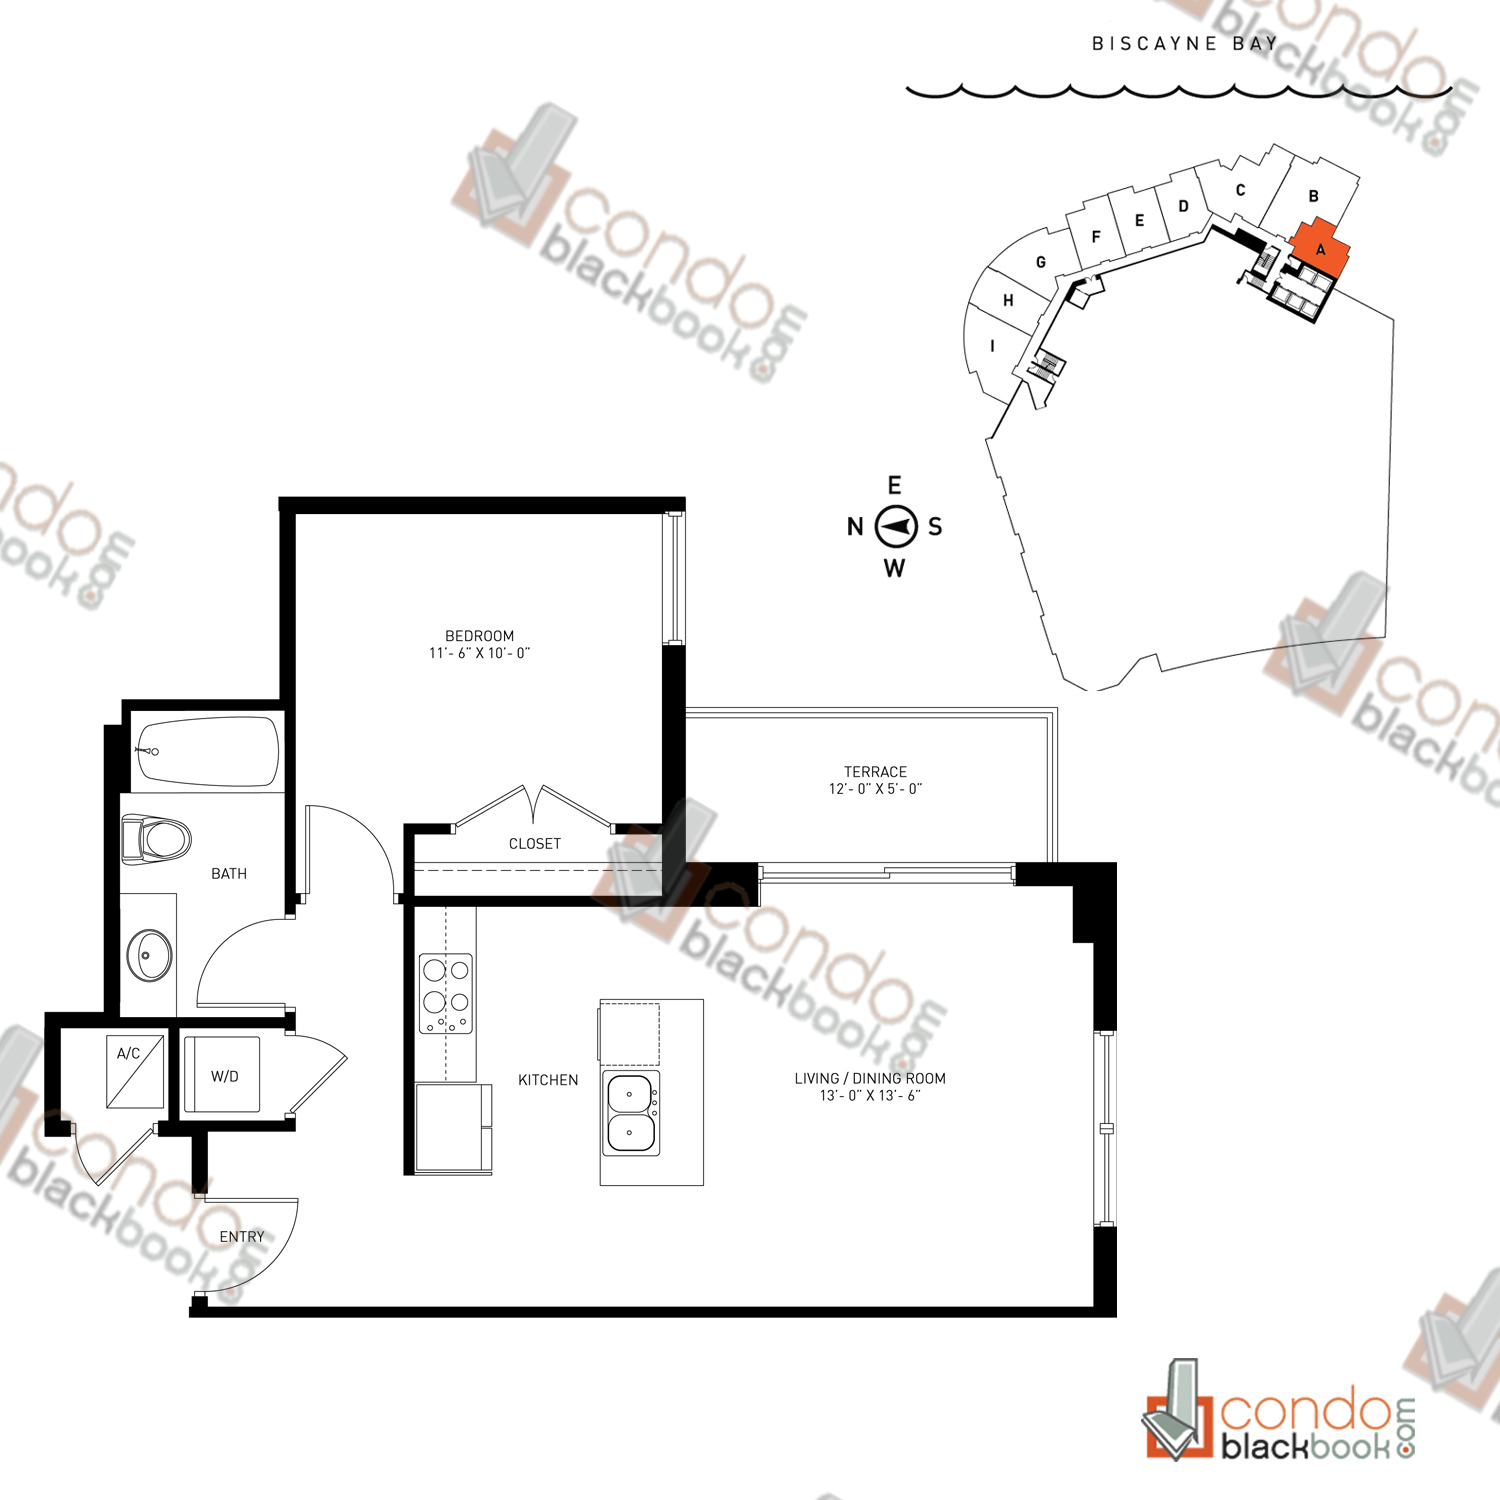 Floor plan for Quantum on the Bay Edgewater Miami, model Loft_A, line South Tower - 01, 1/1 bedrooms, 651 sq ft